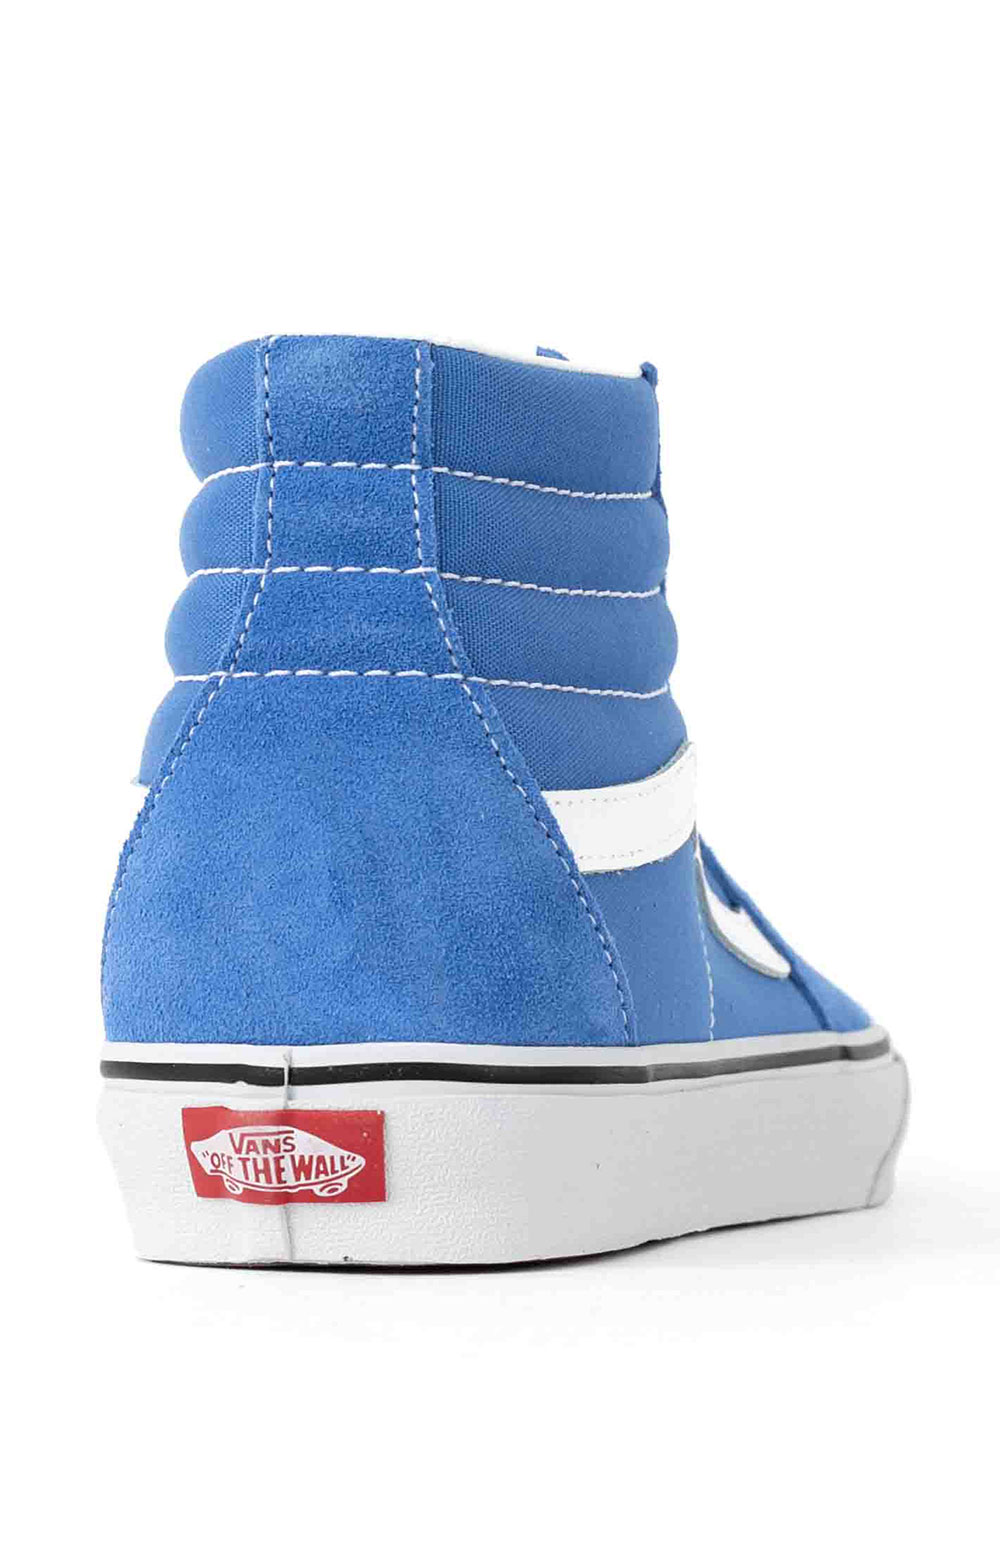 (U3C1UJ) Sk8-Hi Shoes - Nebulas Blue  5